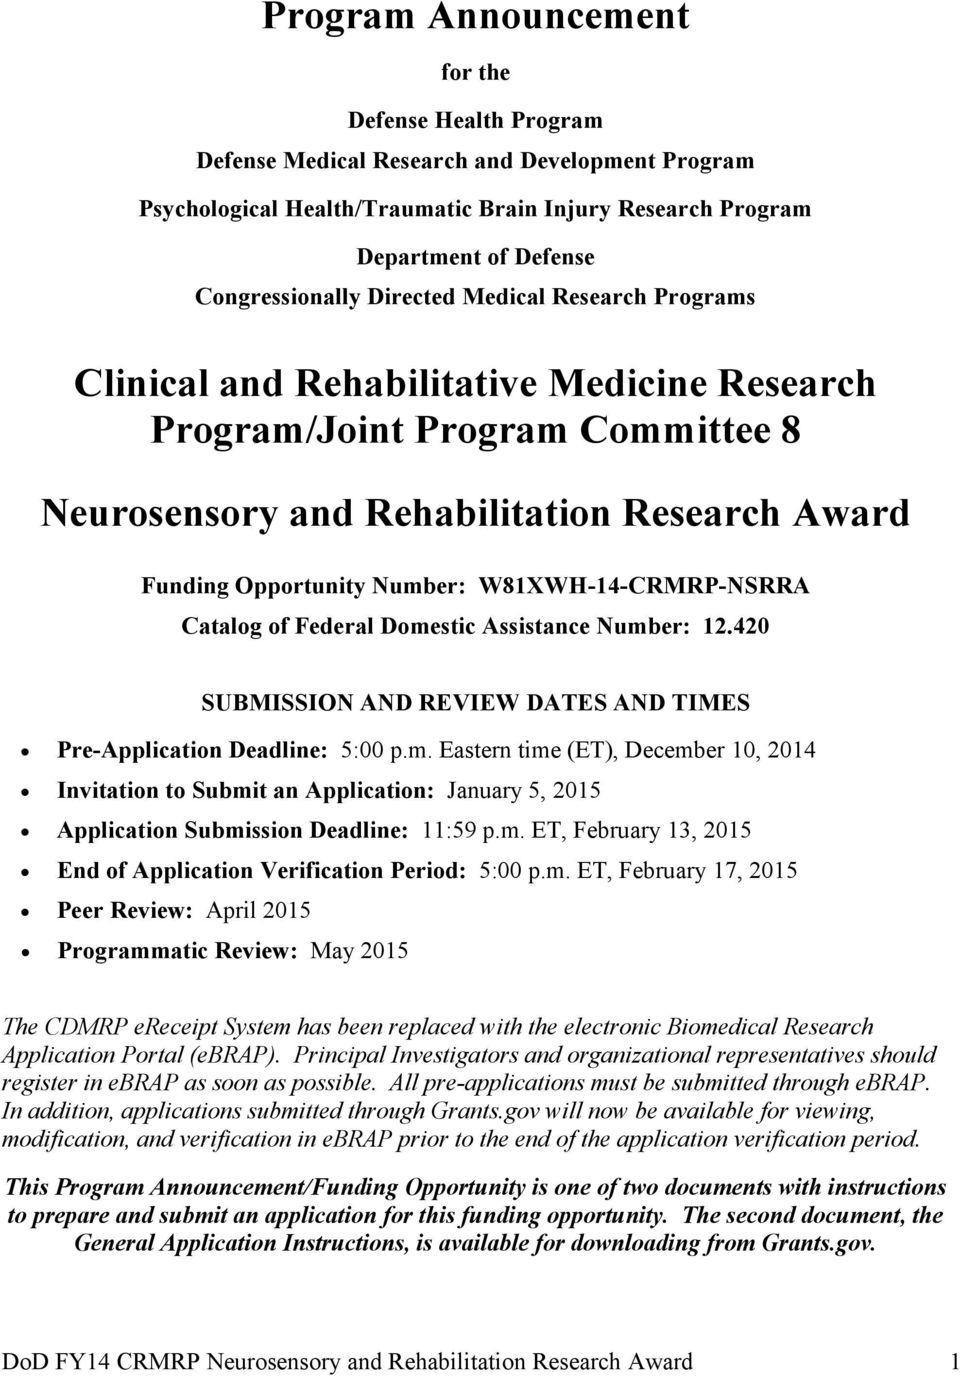 W81XWH-14-CRMRP-NSRRA Catalog of Federal Domestic Assistance Number: 12.420 SUBMISSION AND REVIEW DATES AND TIMES Pre-Application Deadline: 5:00 p.m. Eastern time (ET), December 10, 2014 Invitation to Submit an Application: January 5, 2015 Application Submission Deadline: 11:59 p.